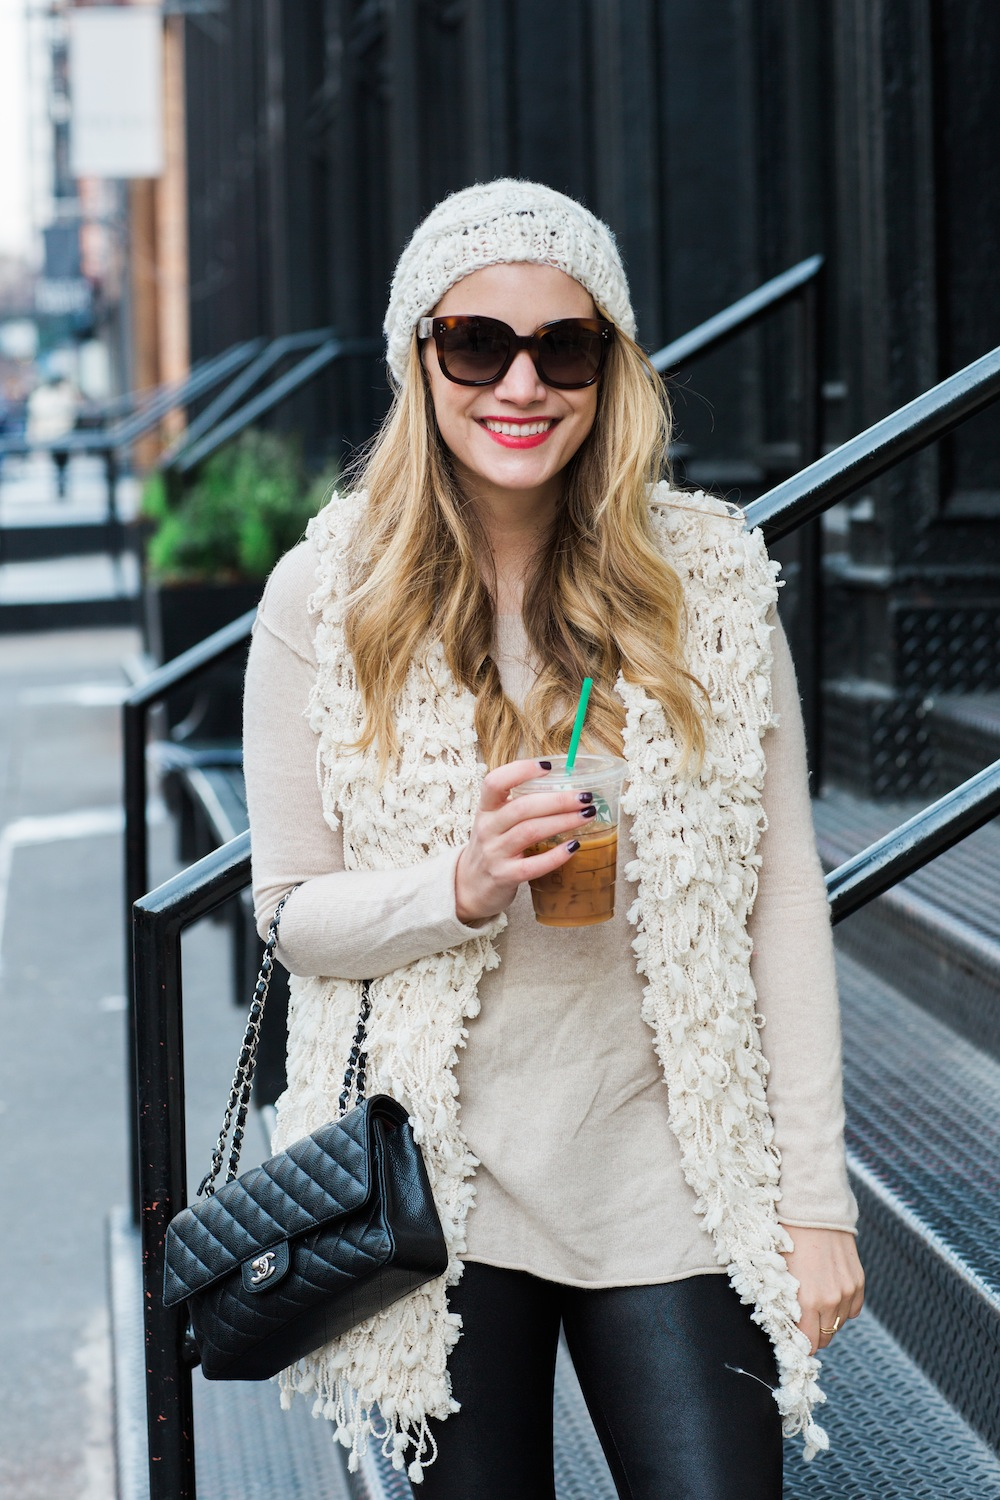 j.crew chateau parka, otte helen sweater, spanx faux leather leggings - grace atwood, the stripe